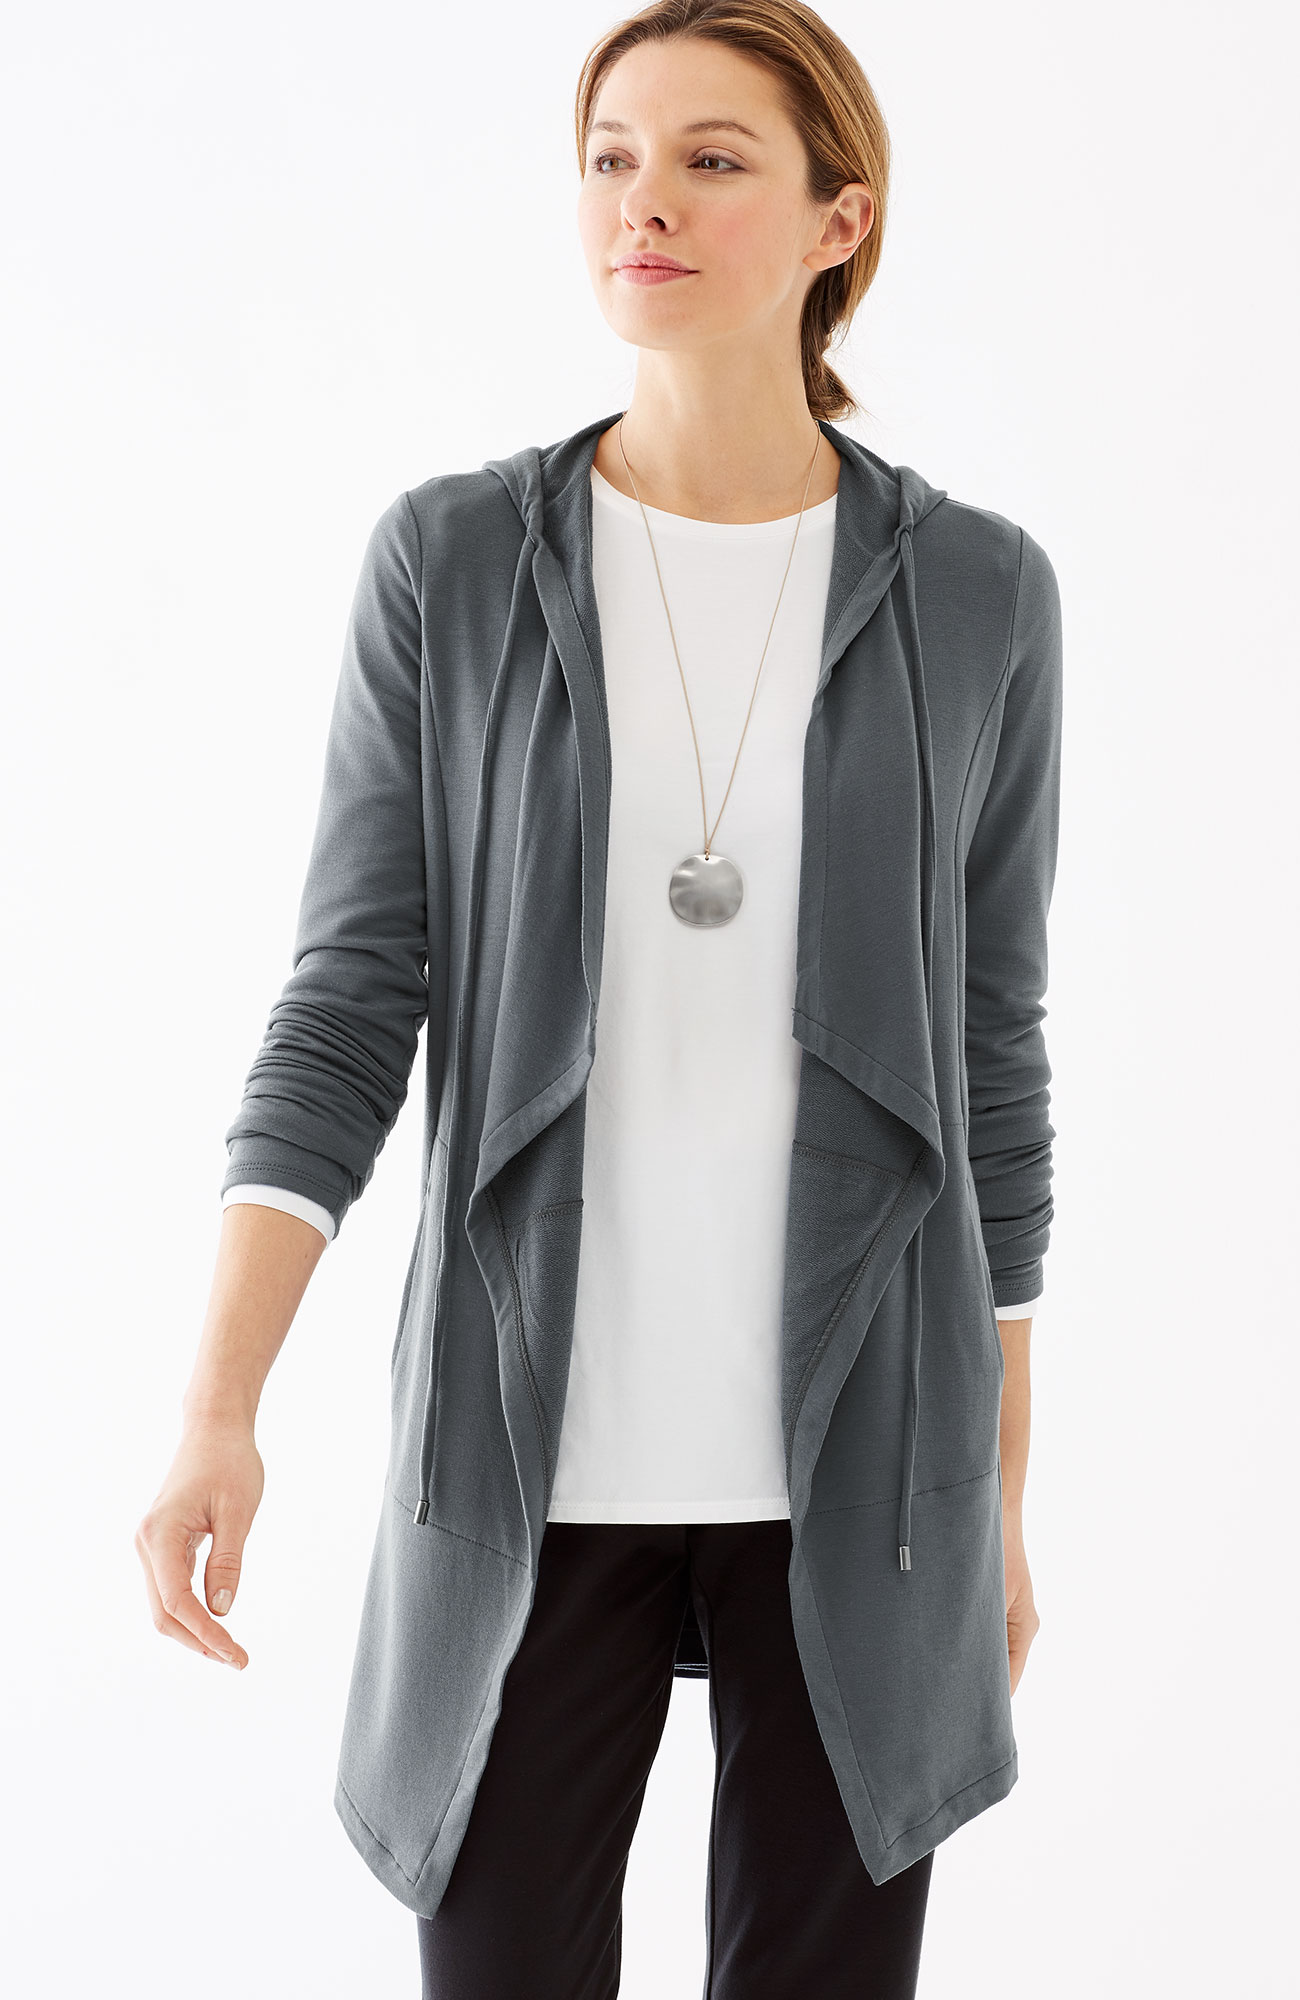 Pure Jill Luxe Tencel® hooded jacket